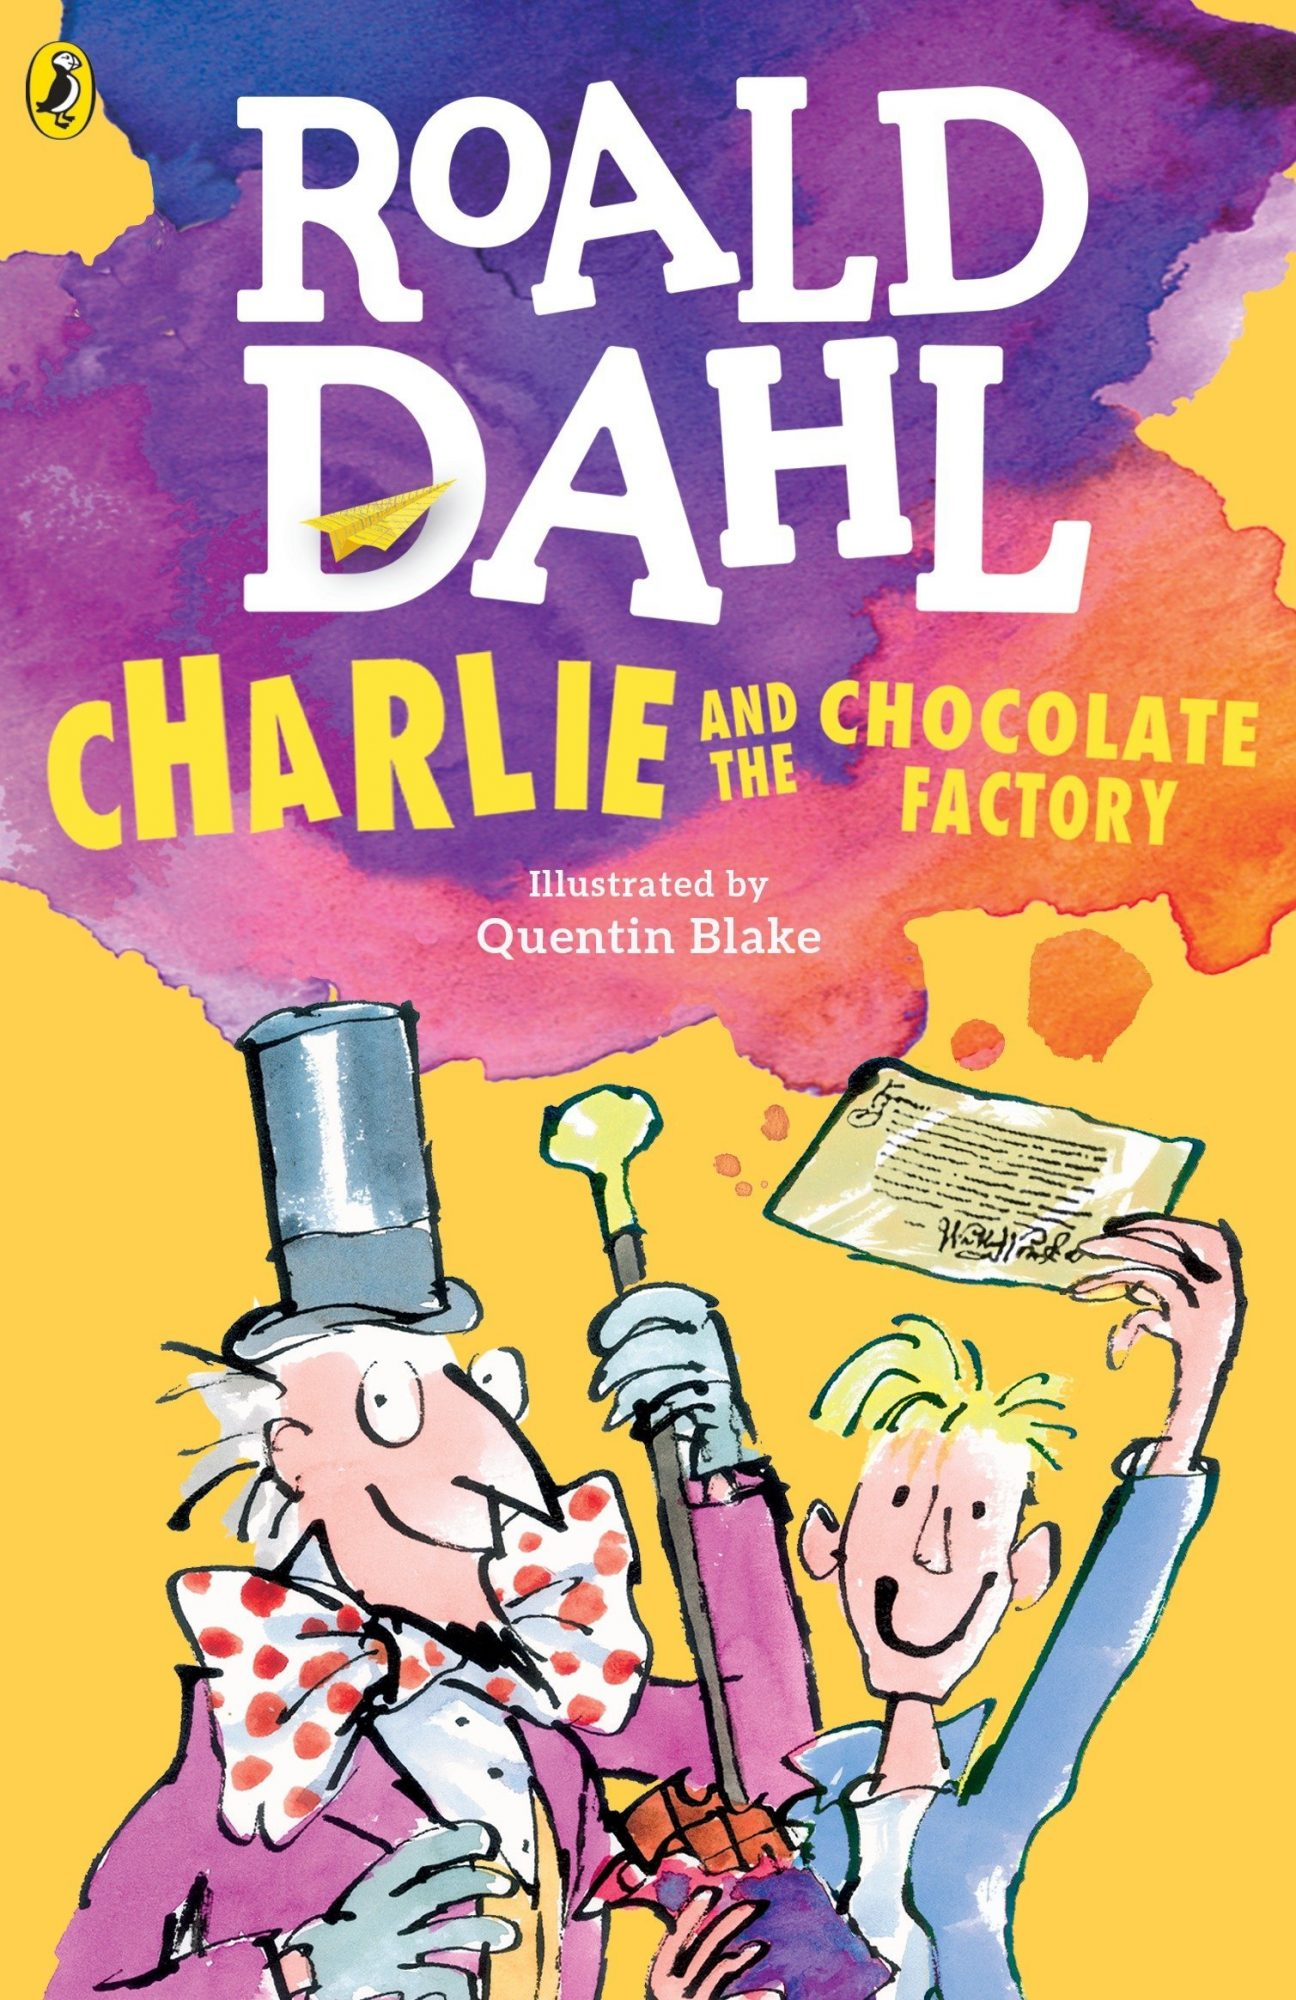 Charlie and the Chocolate Factory by Roald Dahl, illustrated by Quentin Blake